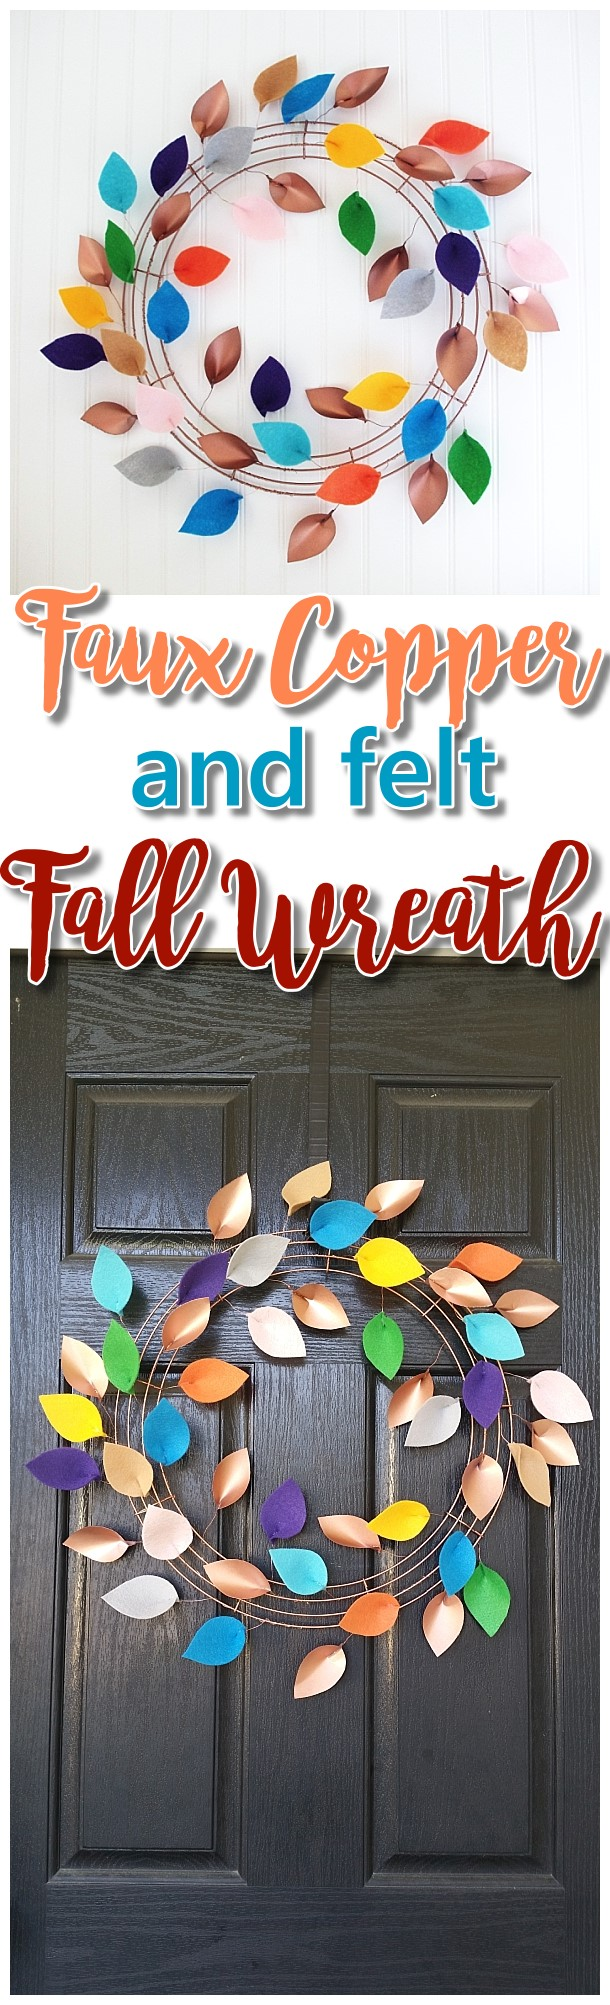 DIY Faux Copper And Felt Leaves Fall Wreath | Easy Fall Door Decorations You Can DIY on a Budget | fall door decorations | fall door wreath